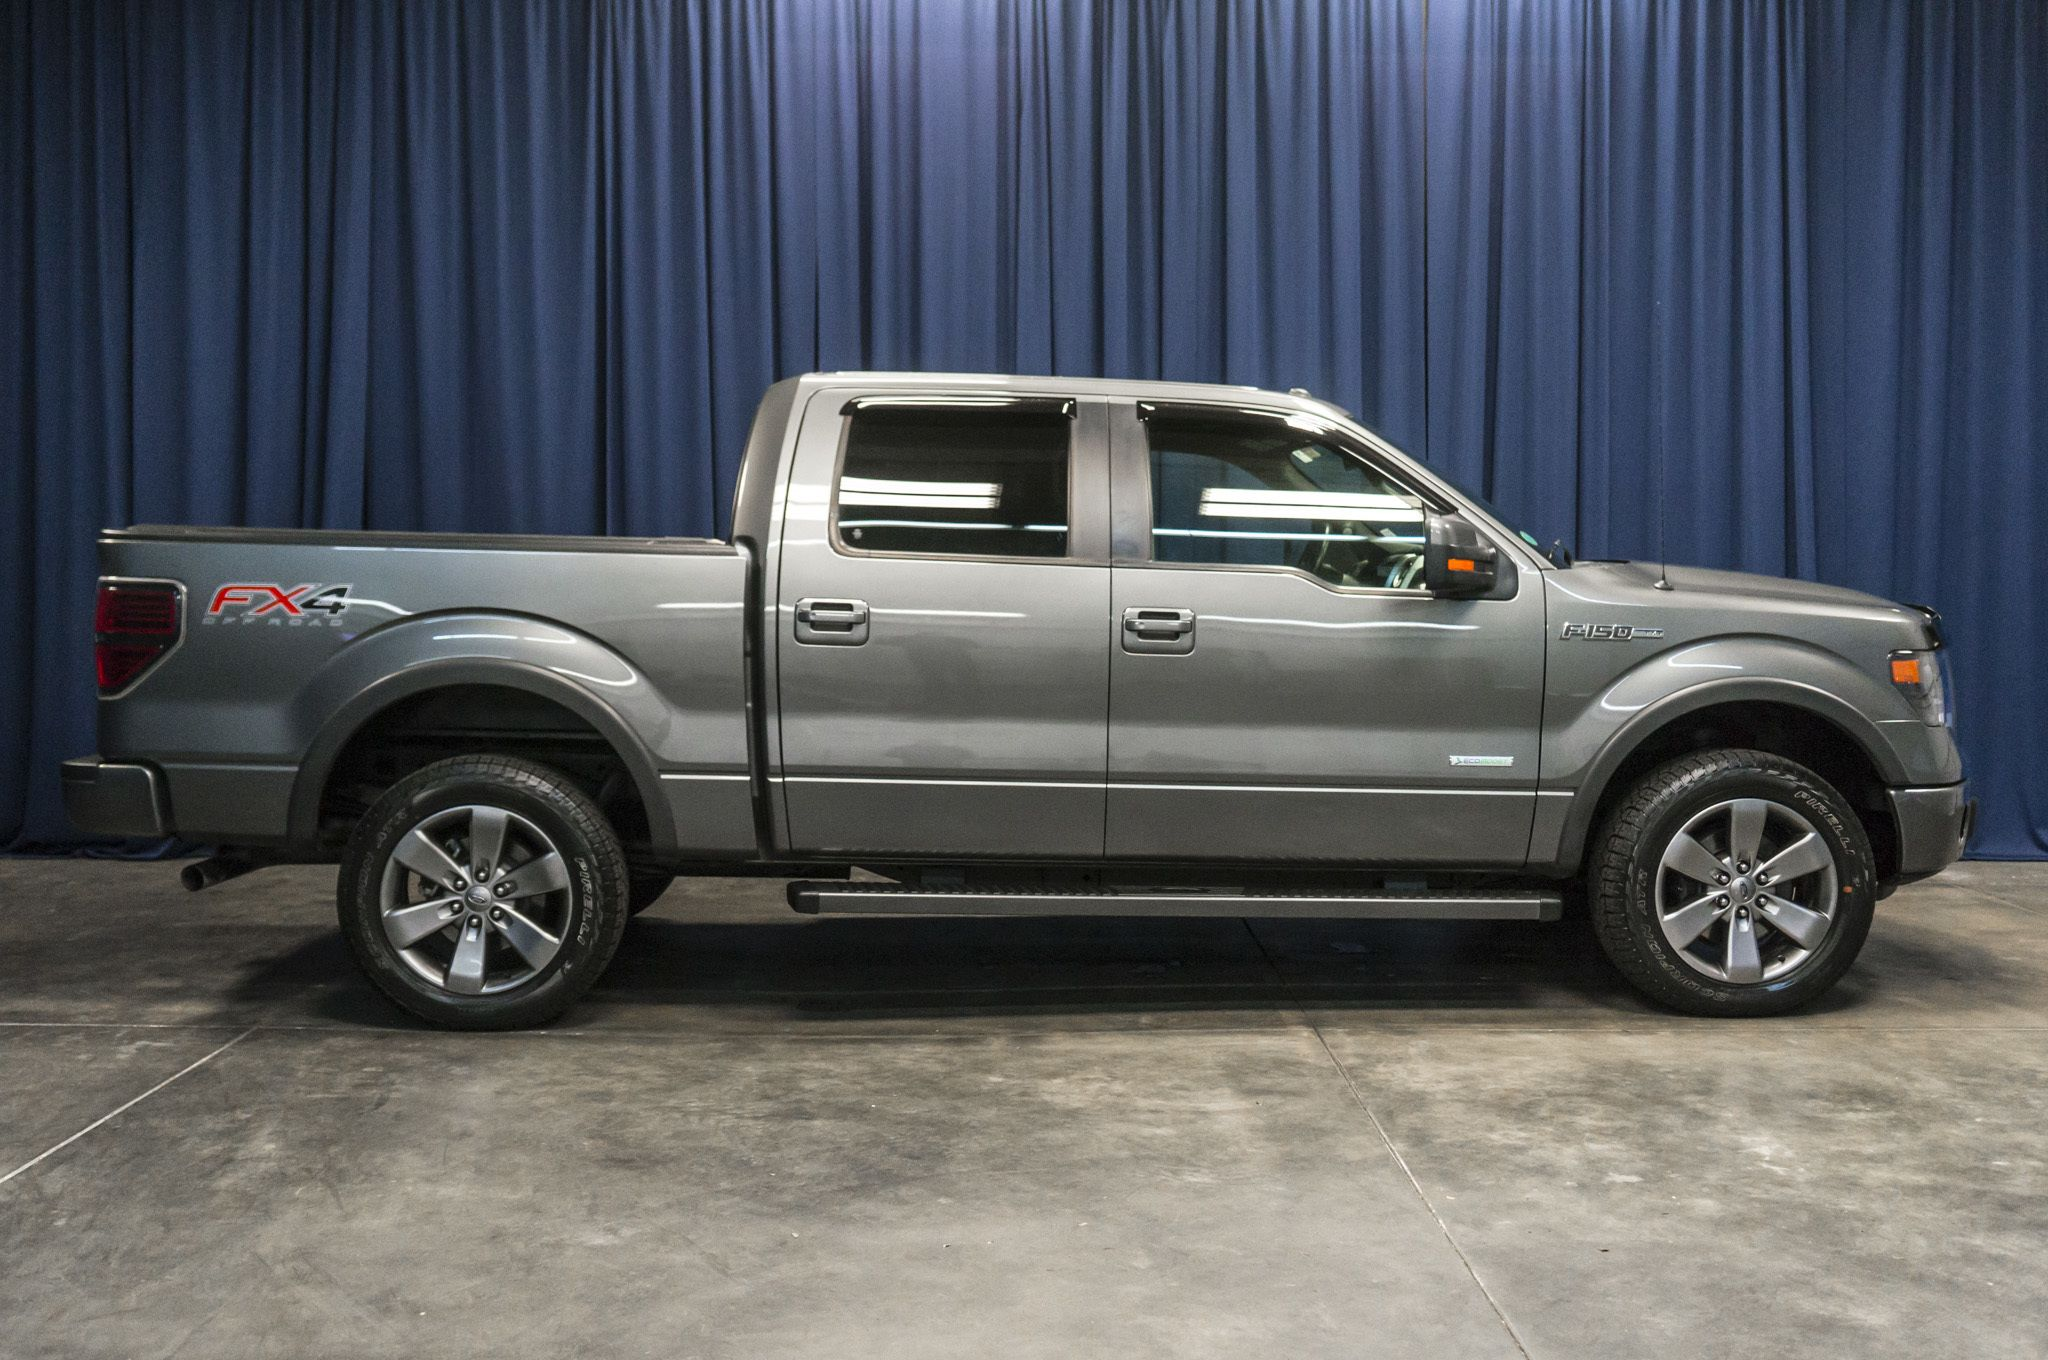 NWMS Delivers : 2014 Ford F150 SuperCrew Cab FX4 Pickup 4D 5 1/2 ft. Buy online & delivered to your home, with 3 day returns. AutoCheck® verified clean title & accident free. Online financing, a real trade-in offer & additional protection.